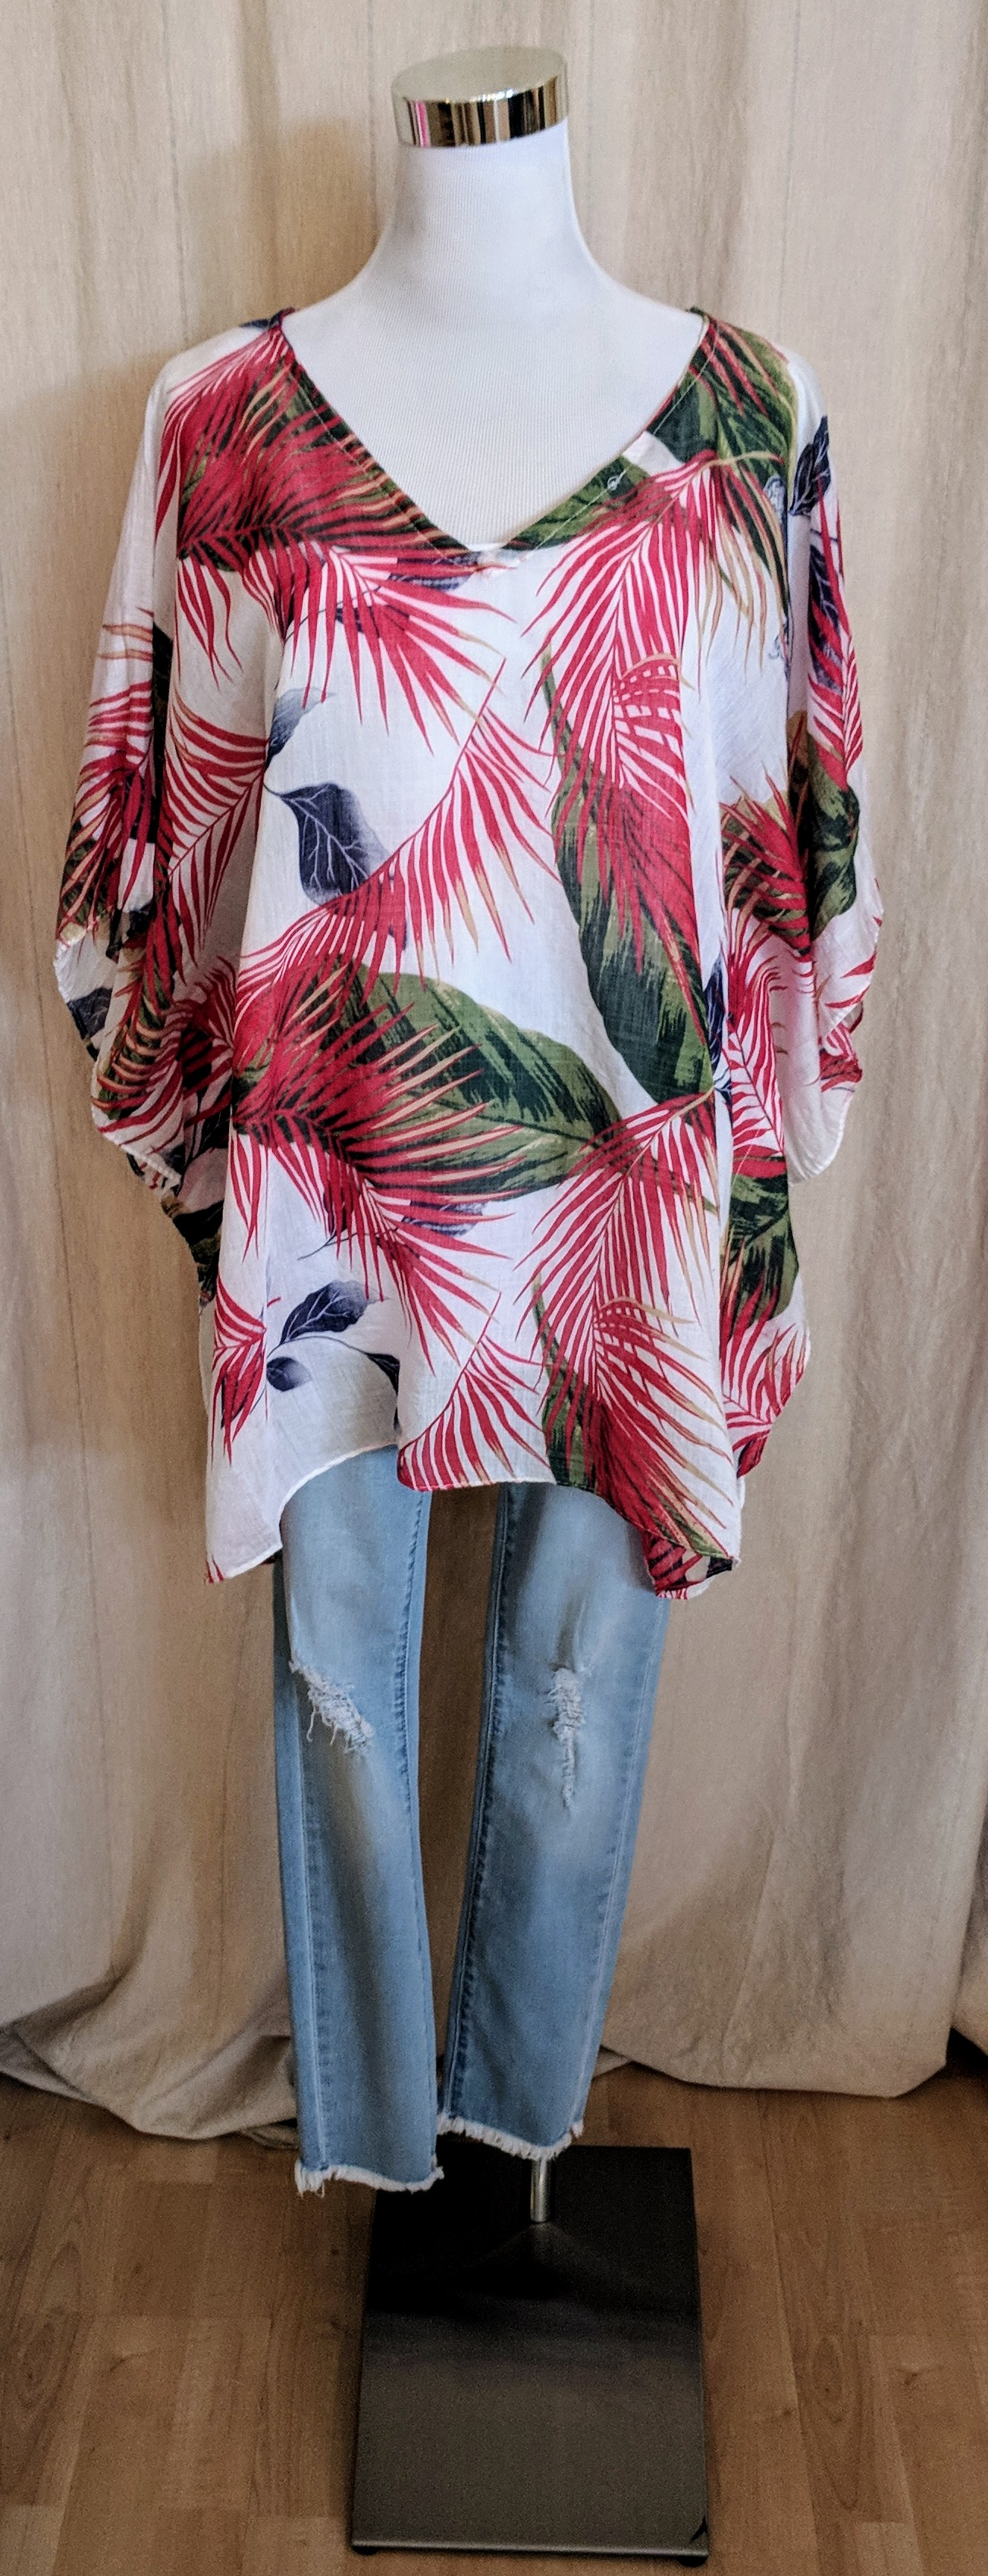 Red tropical pattern cover.